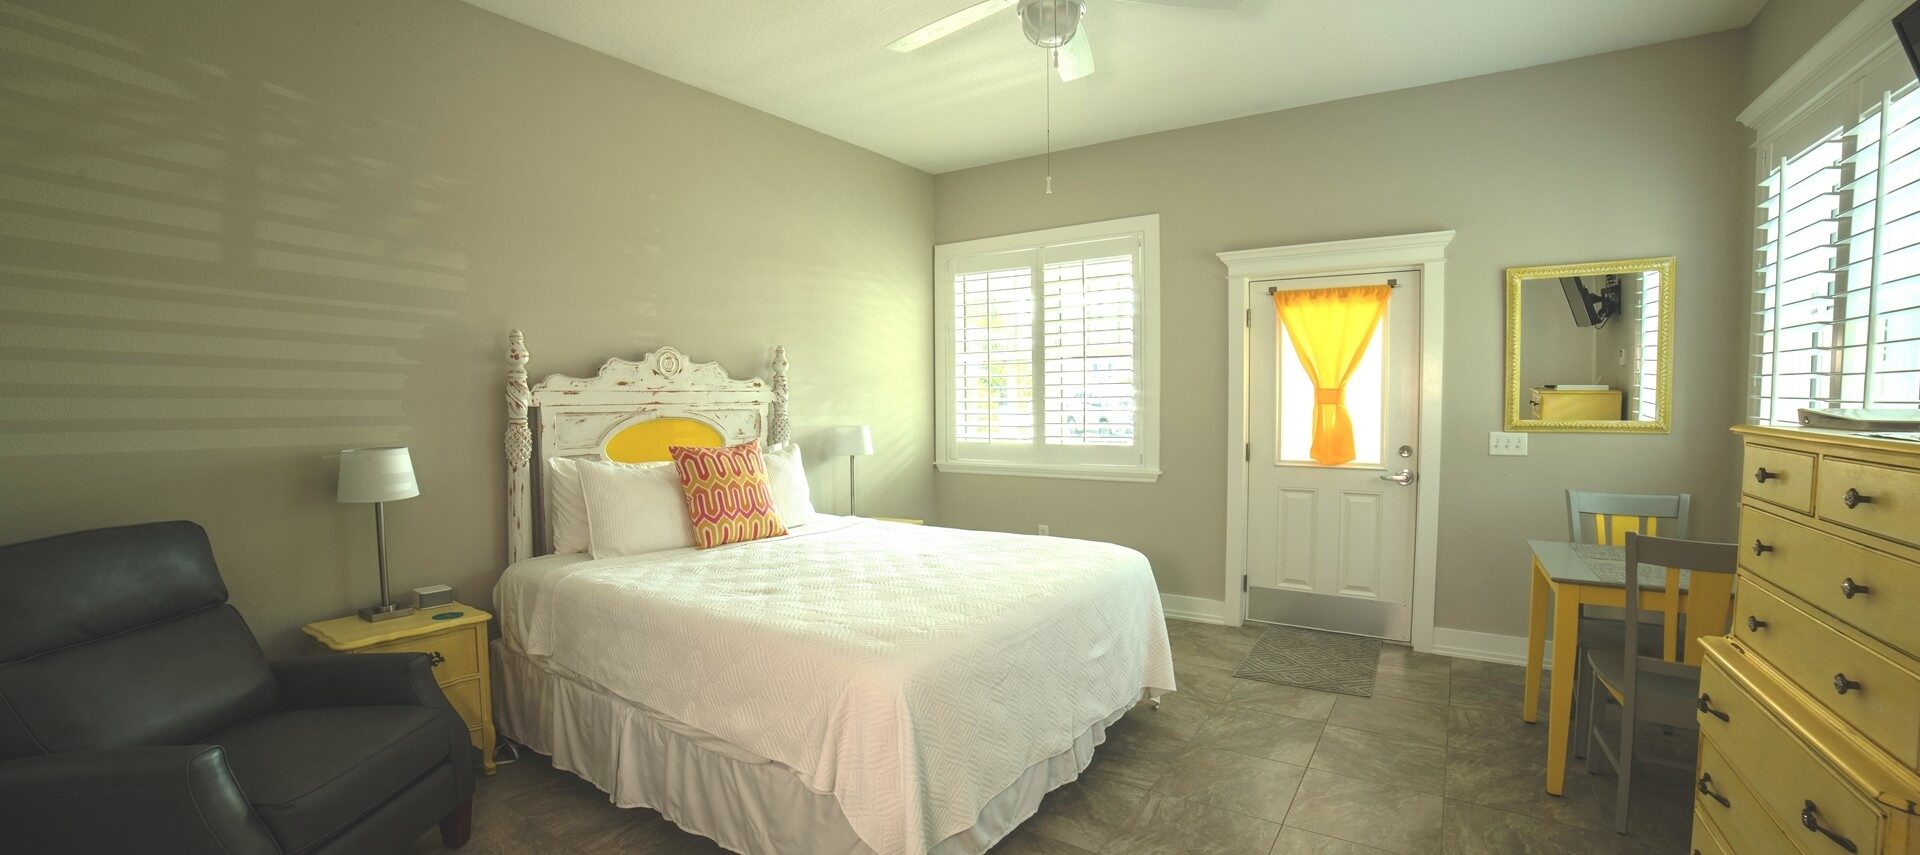 Braight and airy guestroom with a Bed amde up in white, a yellow dresser and a ceiling fan.